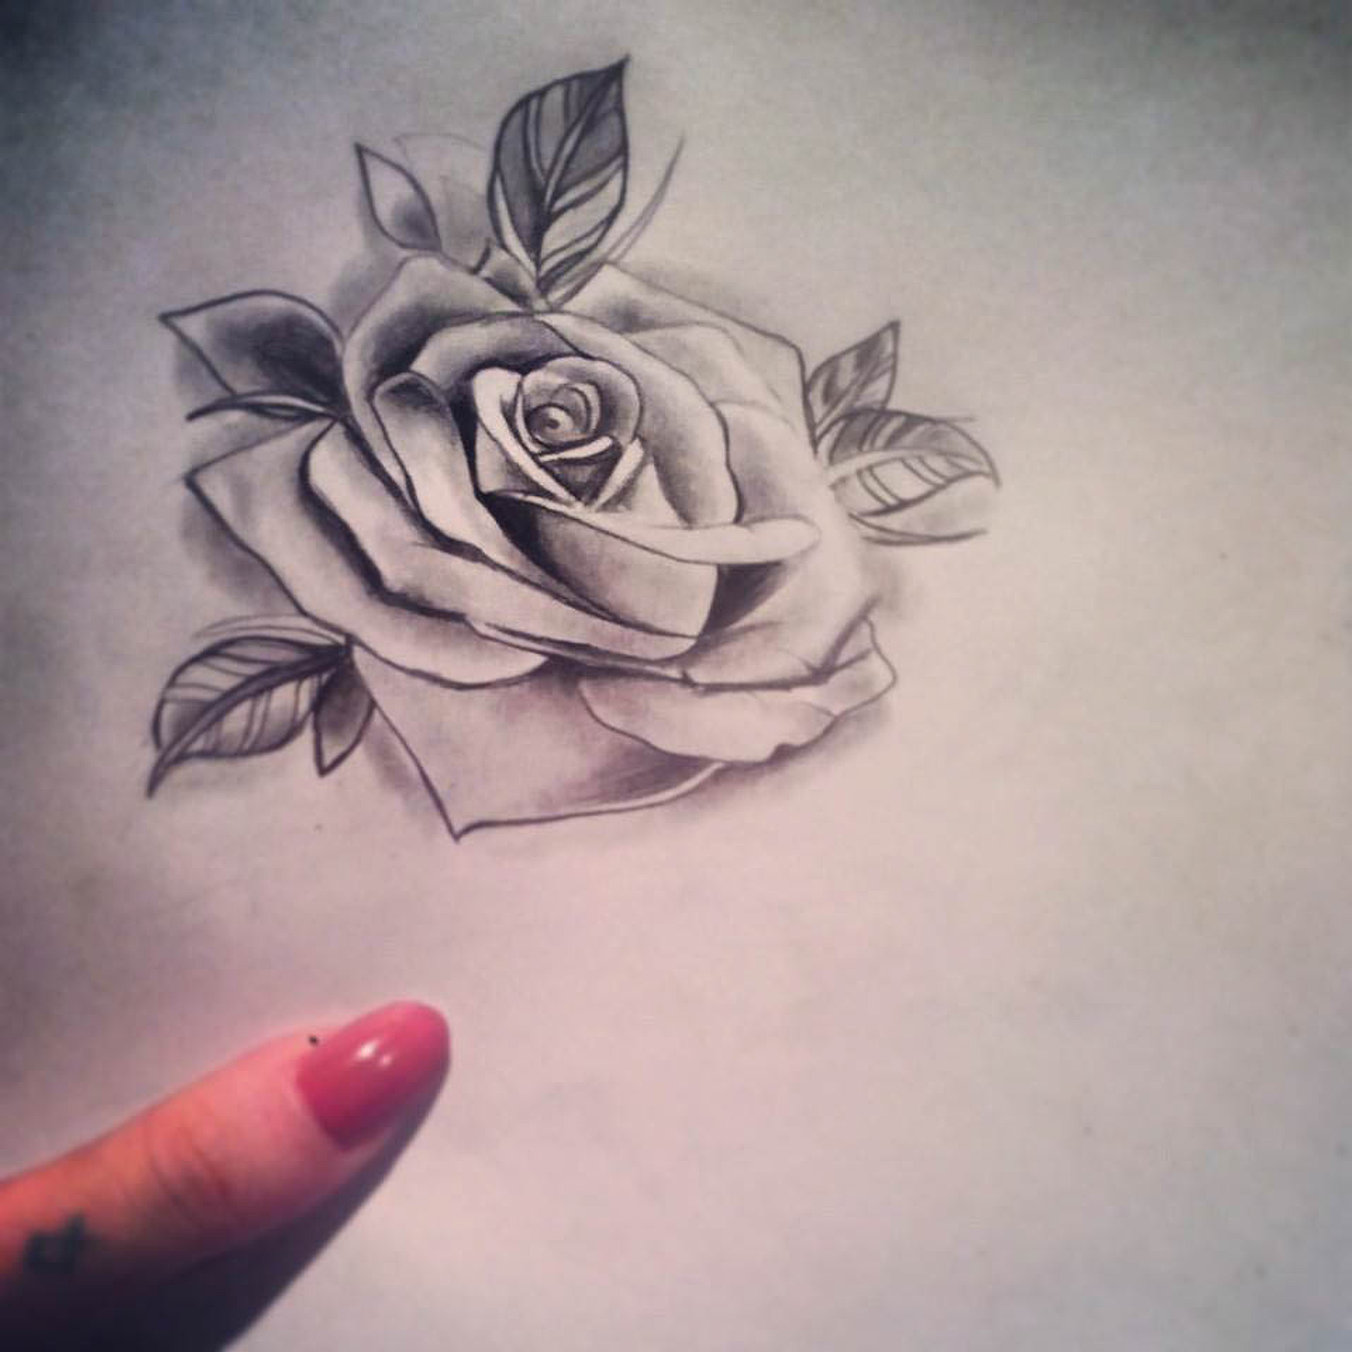 Dessin de rose tatouage galerie tatouage - Rose dessin tatouage ...